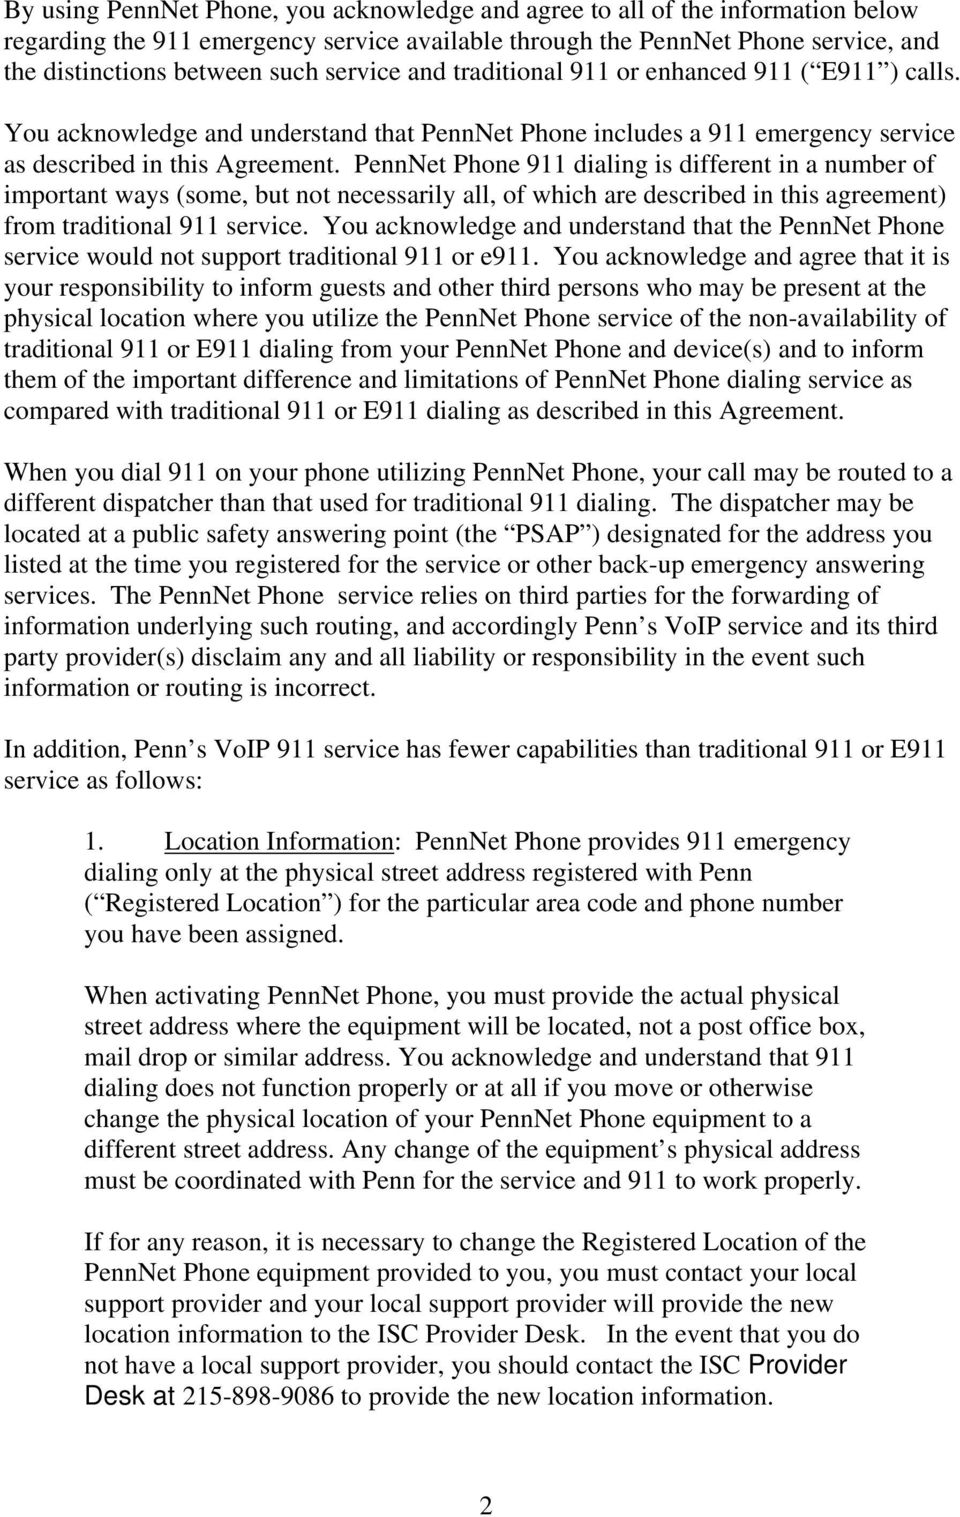 PennNet Phone 911 dialing is different in a number of important ways (some, but not necessarily all, of which are described in this agreement) from traditional 911 service.